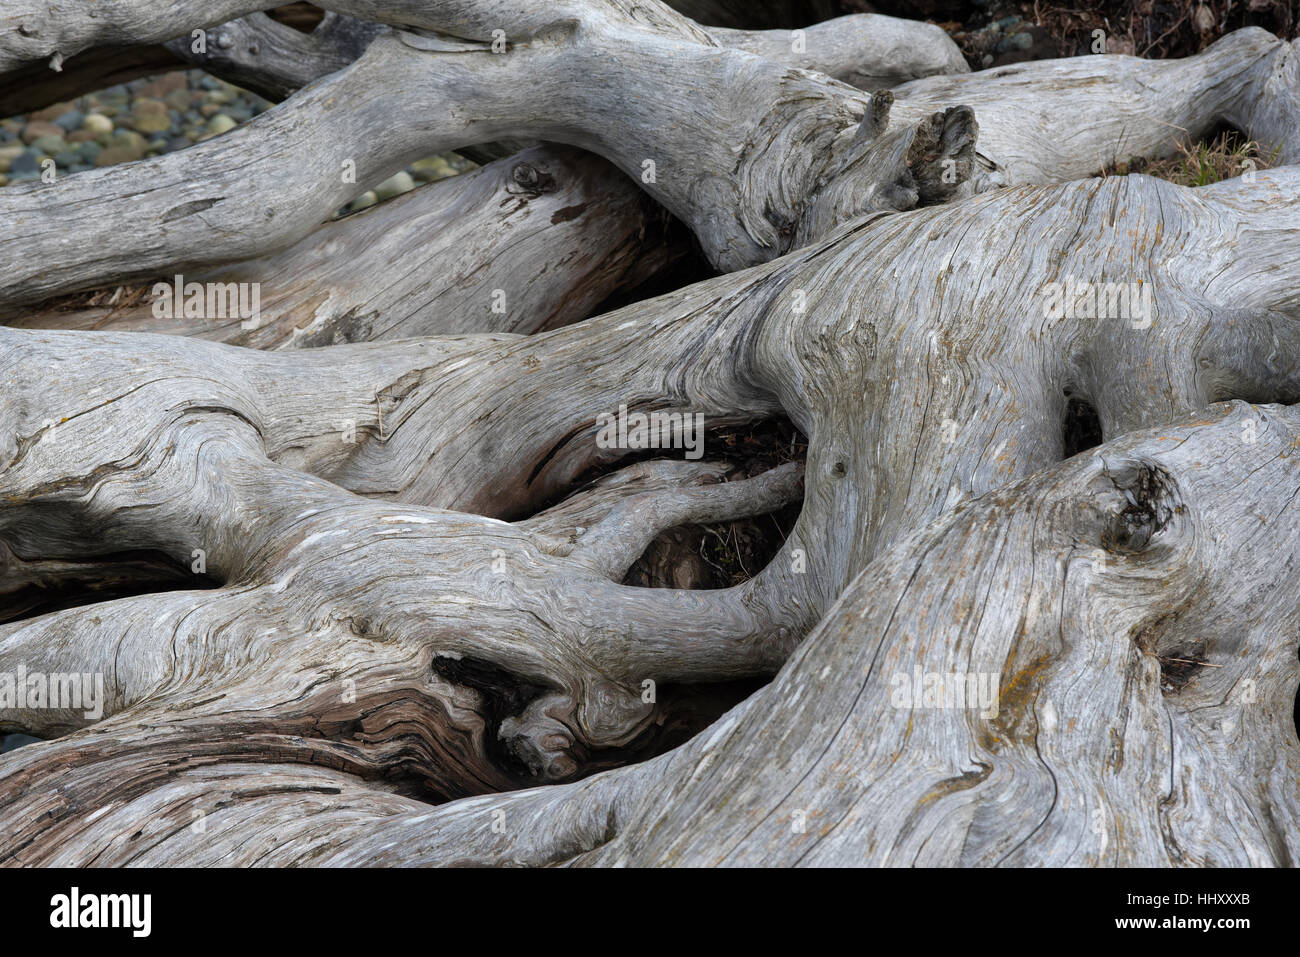 Large tree root system washed ashore on the beach of Vancouver Island at Parksville BC Canada. SCO 11,695. - Stock Image